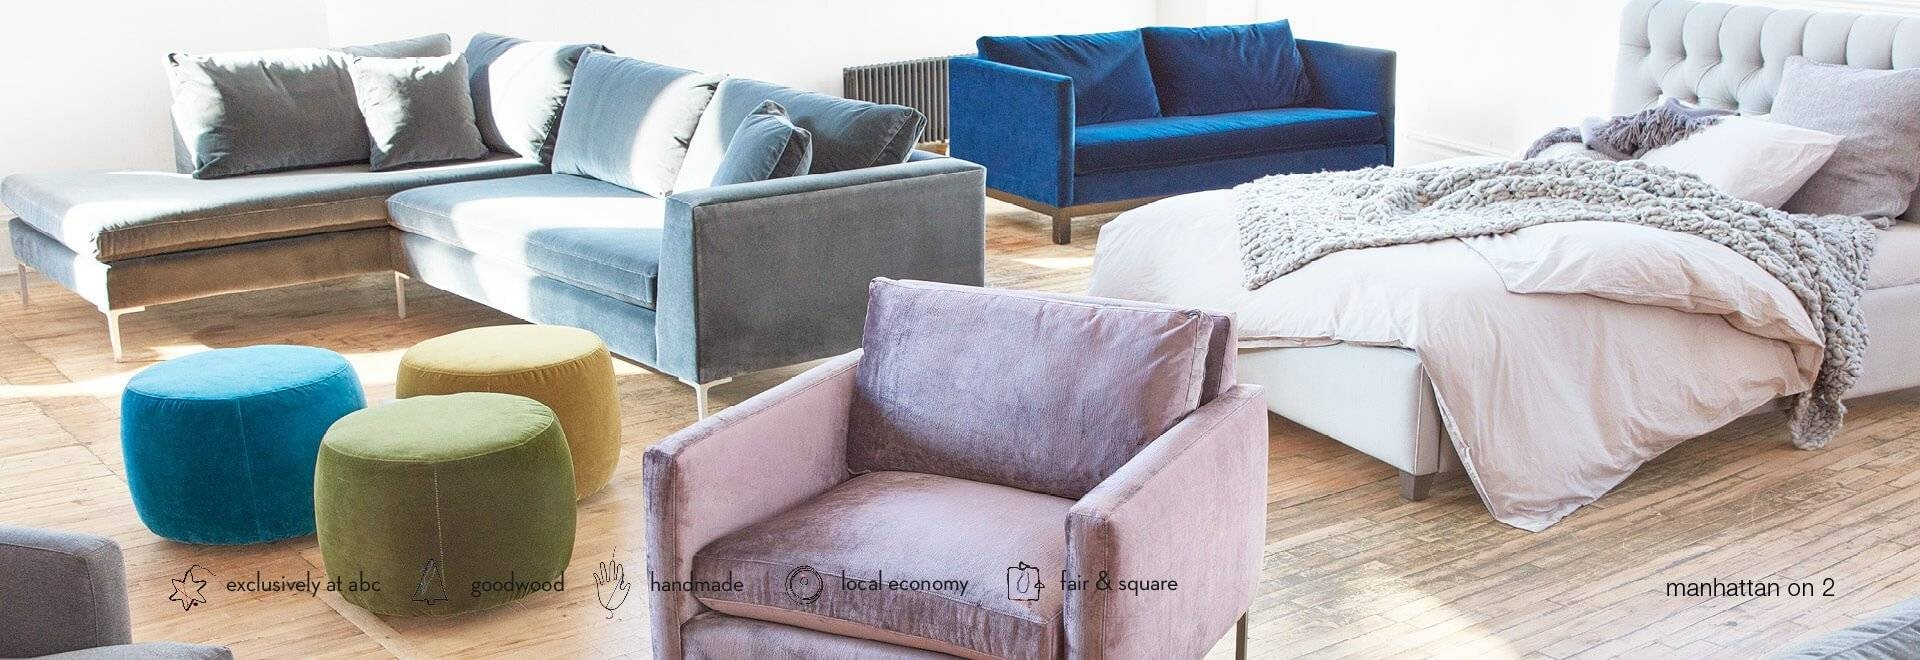 Cobble Hill Furniture At Abc Home In Cobble Hill Sofas (View 5 of 15)